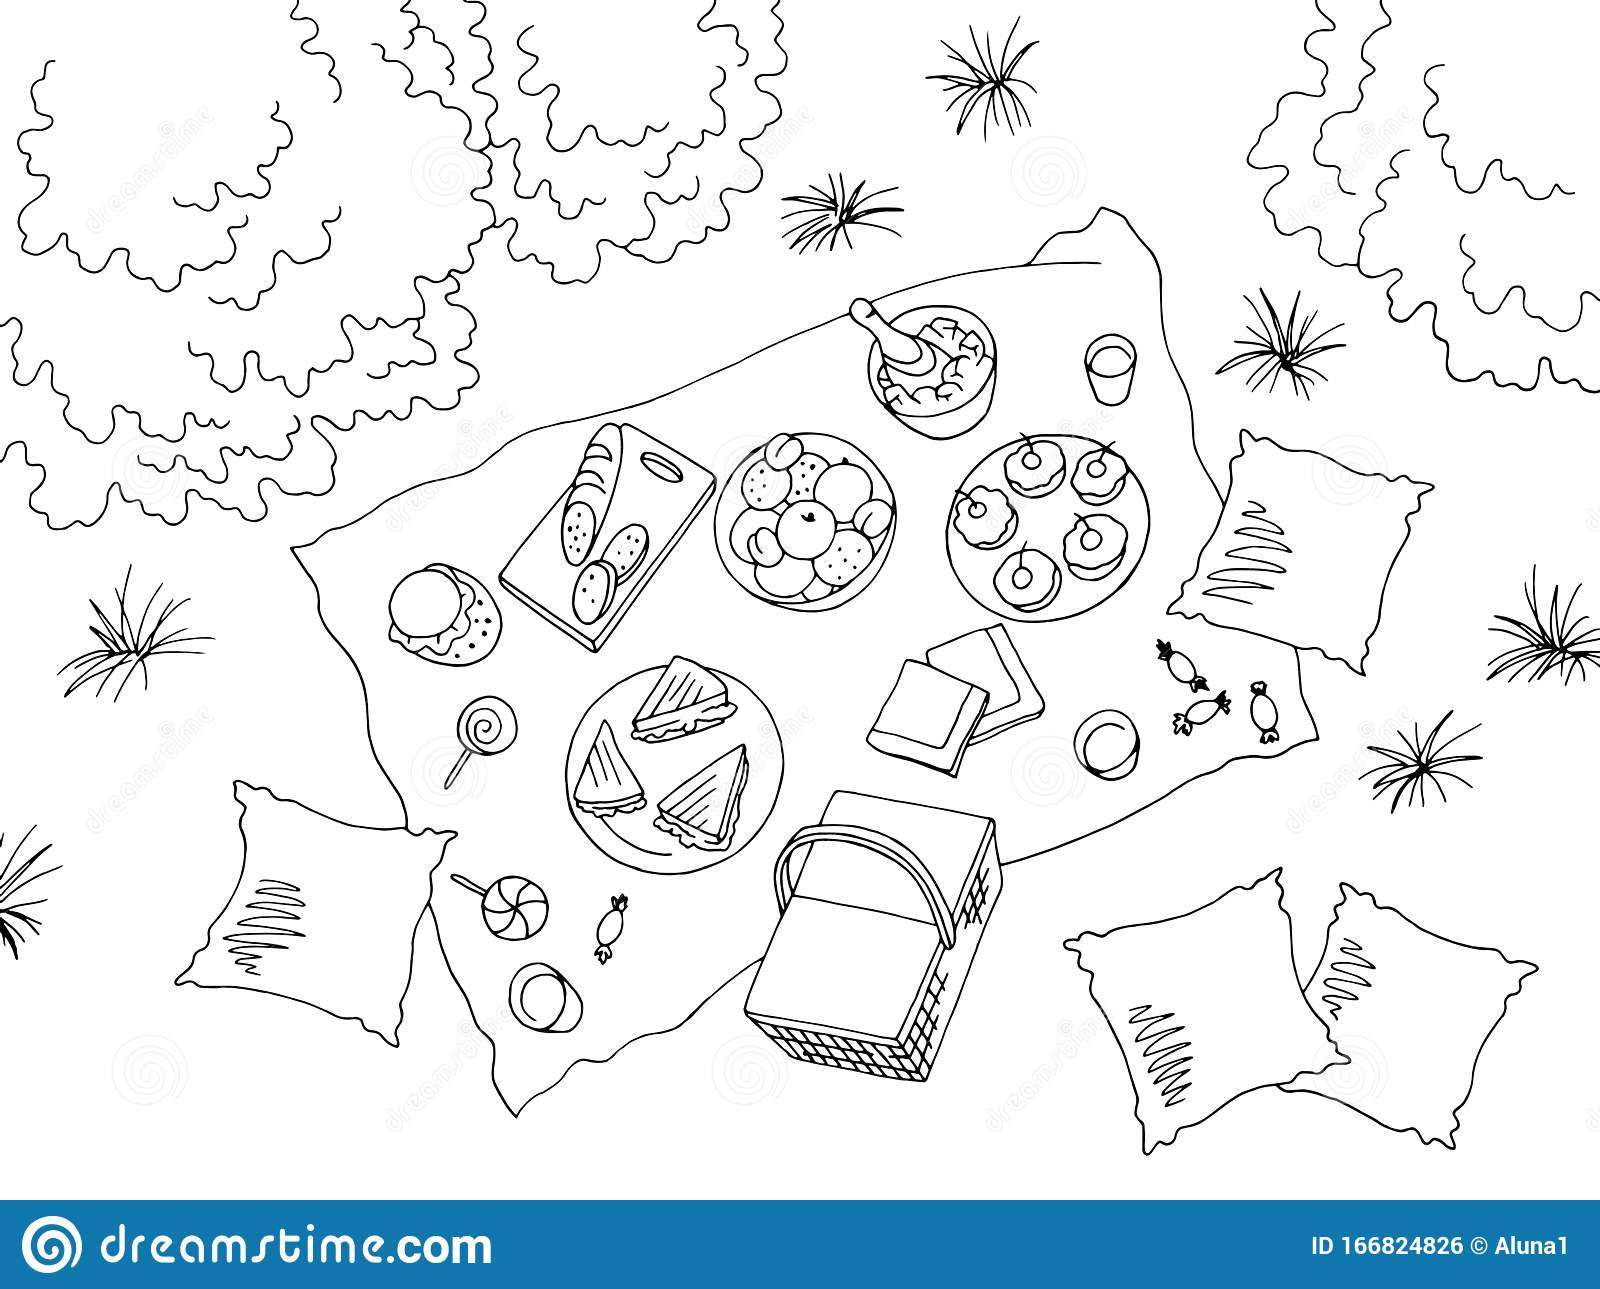 20+ Picnic And Pool Day Clipart Black And White